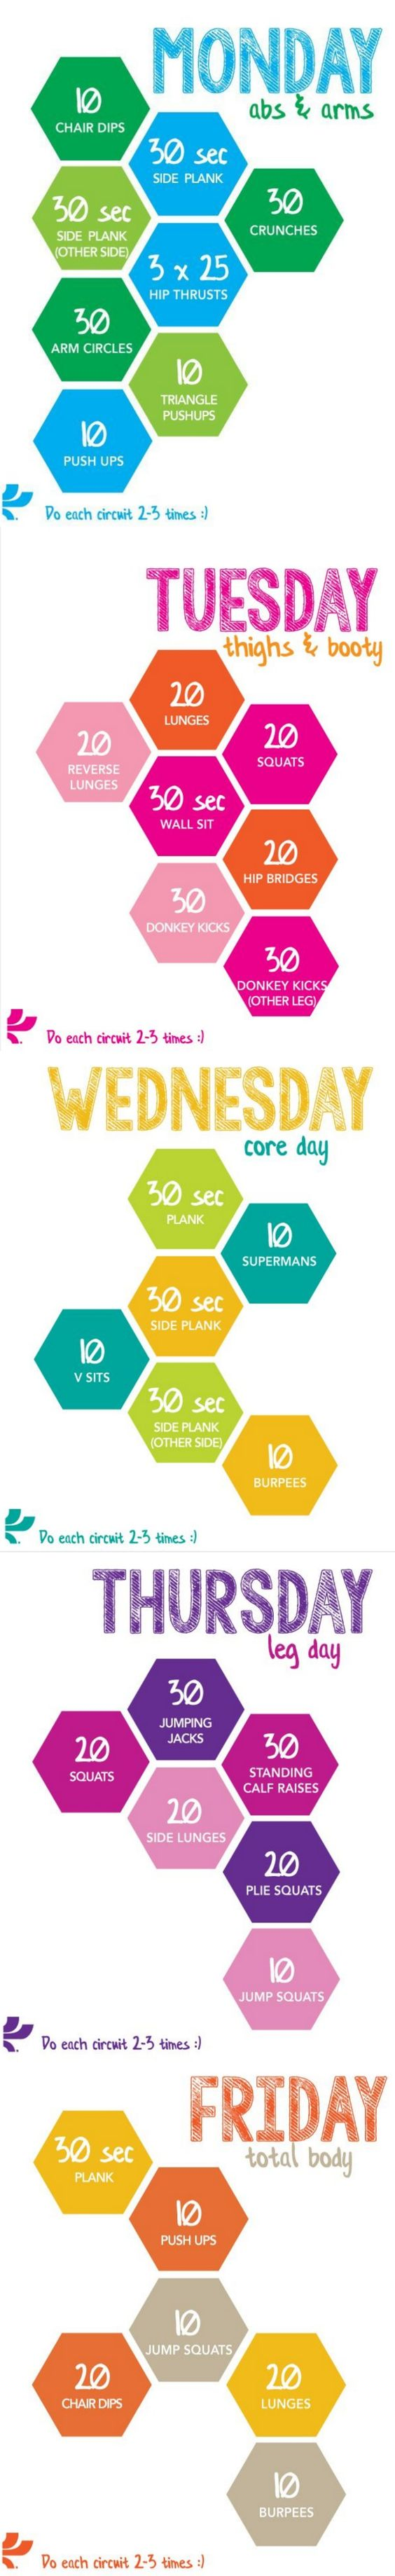 Never Miss A Monday Workout Again!